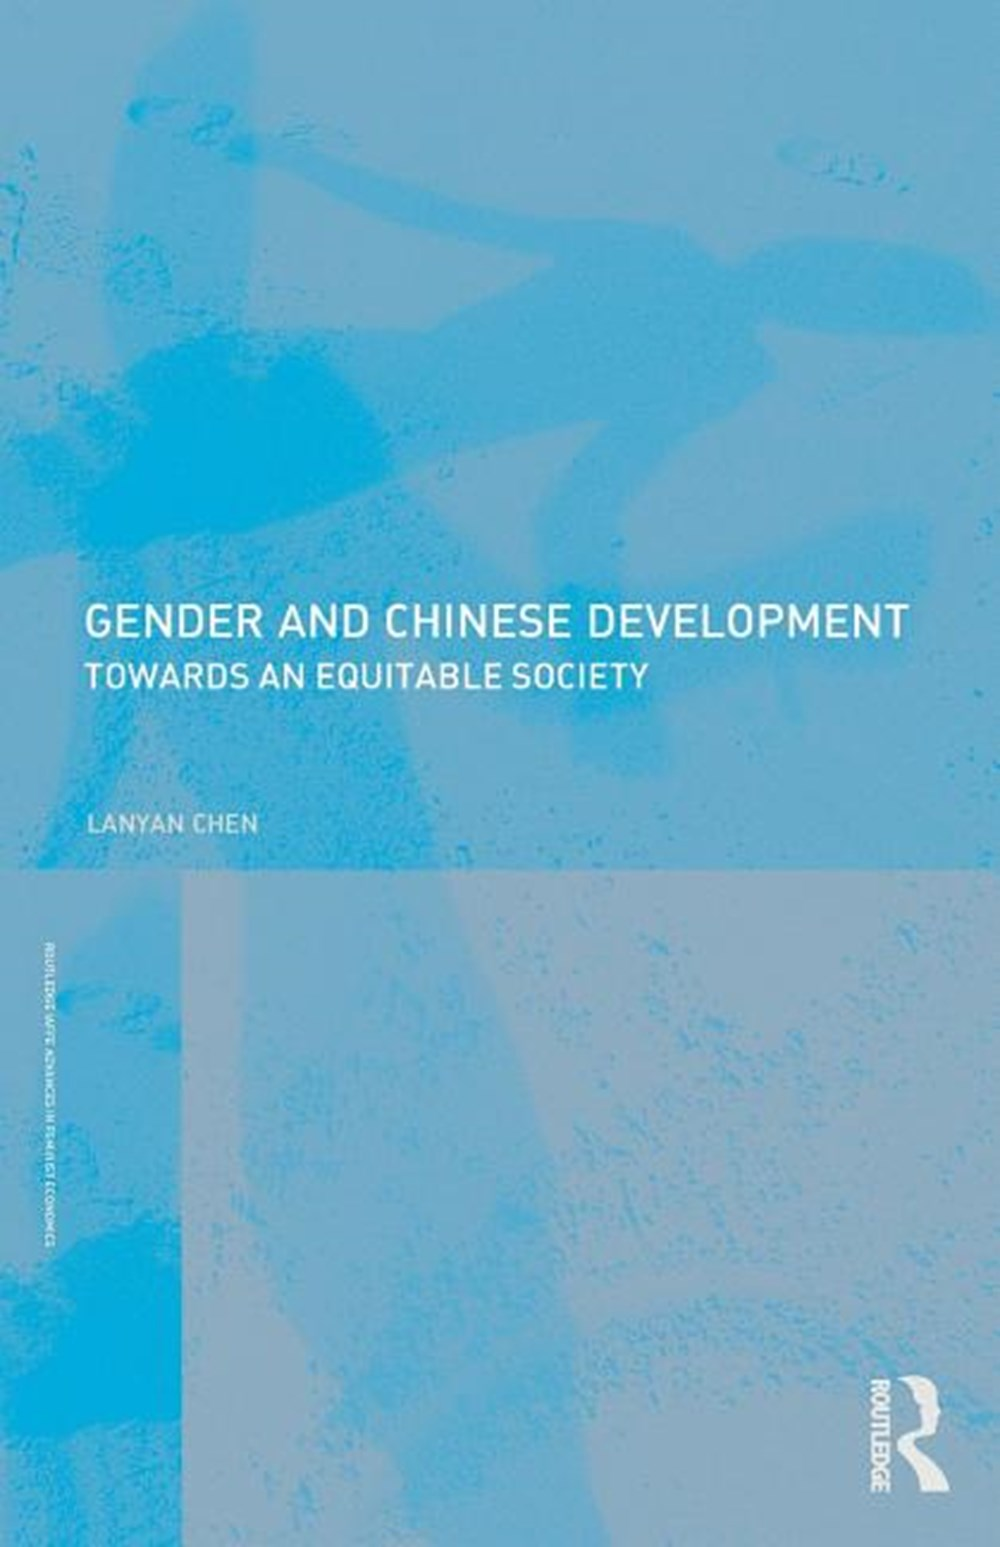 Gender and Chinese Development Towards an Equitable Society